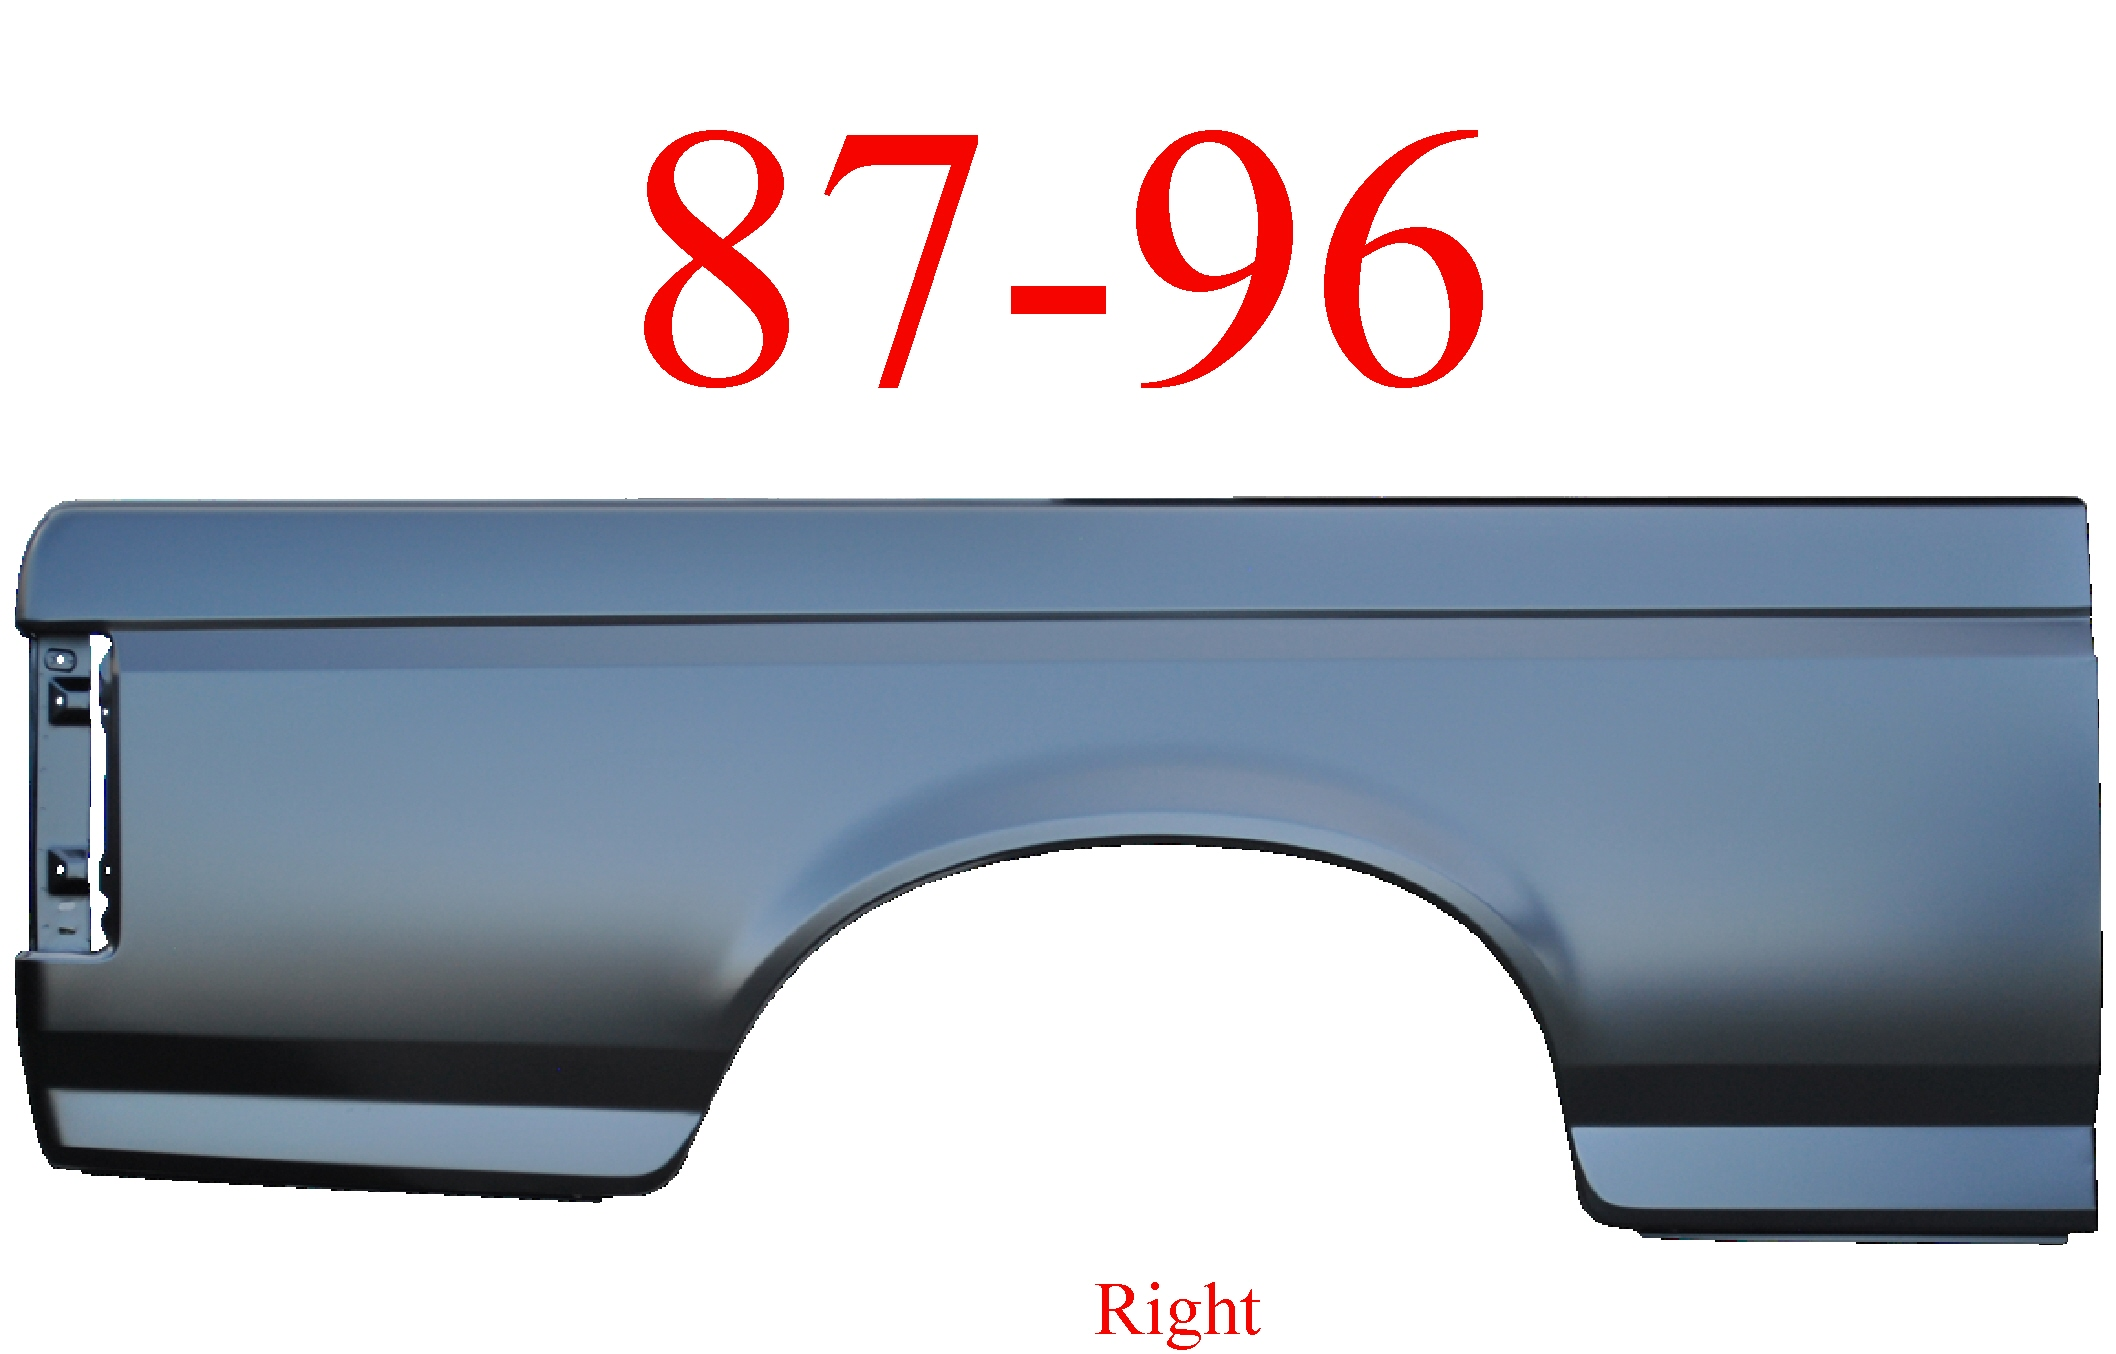 87-96 Ford Right 6.5\' Bed Side